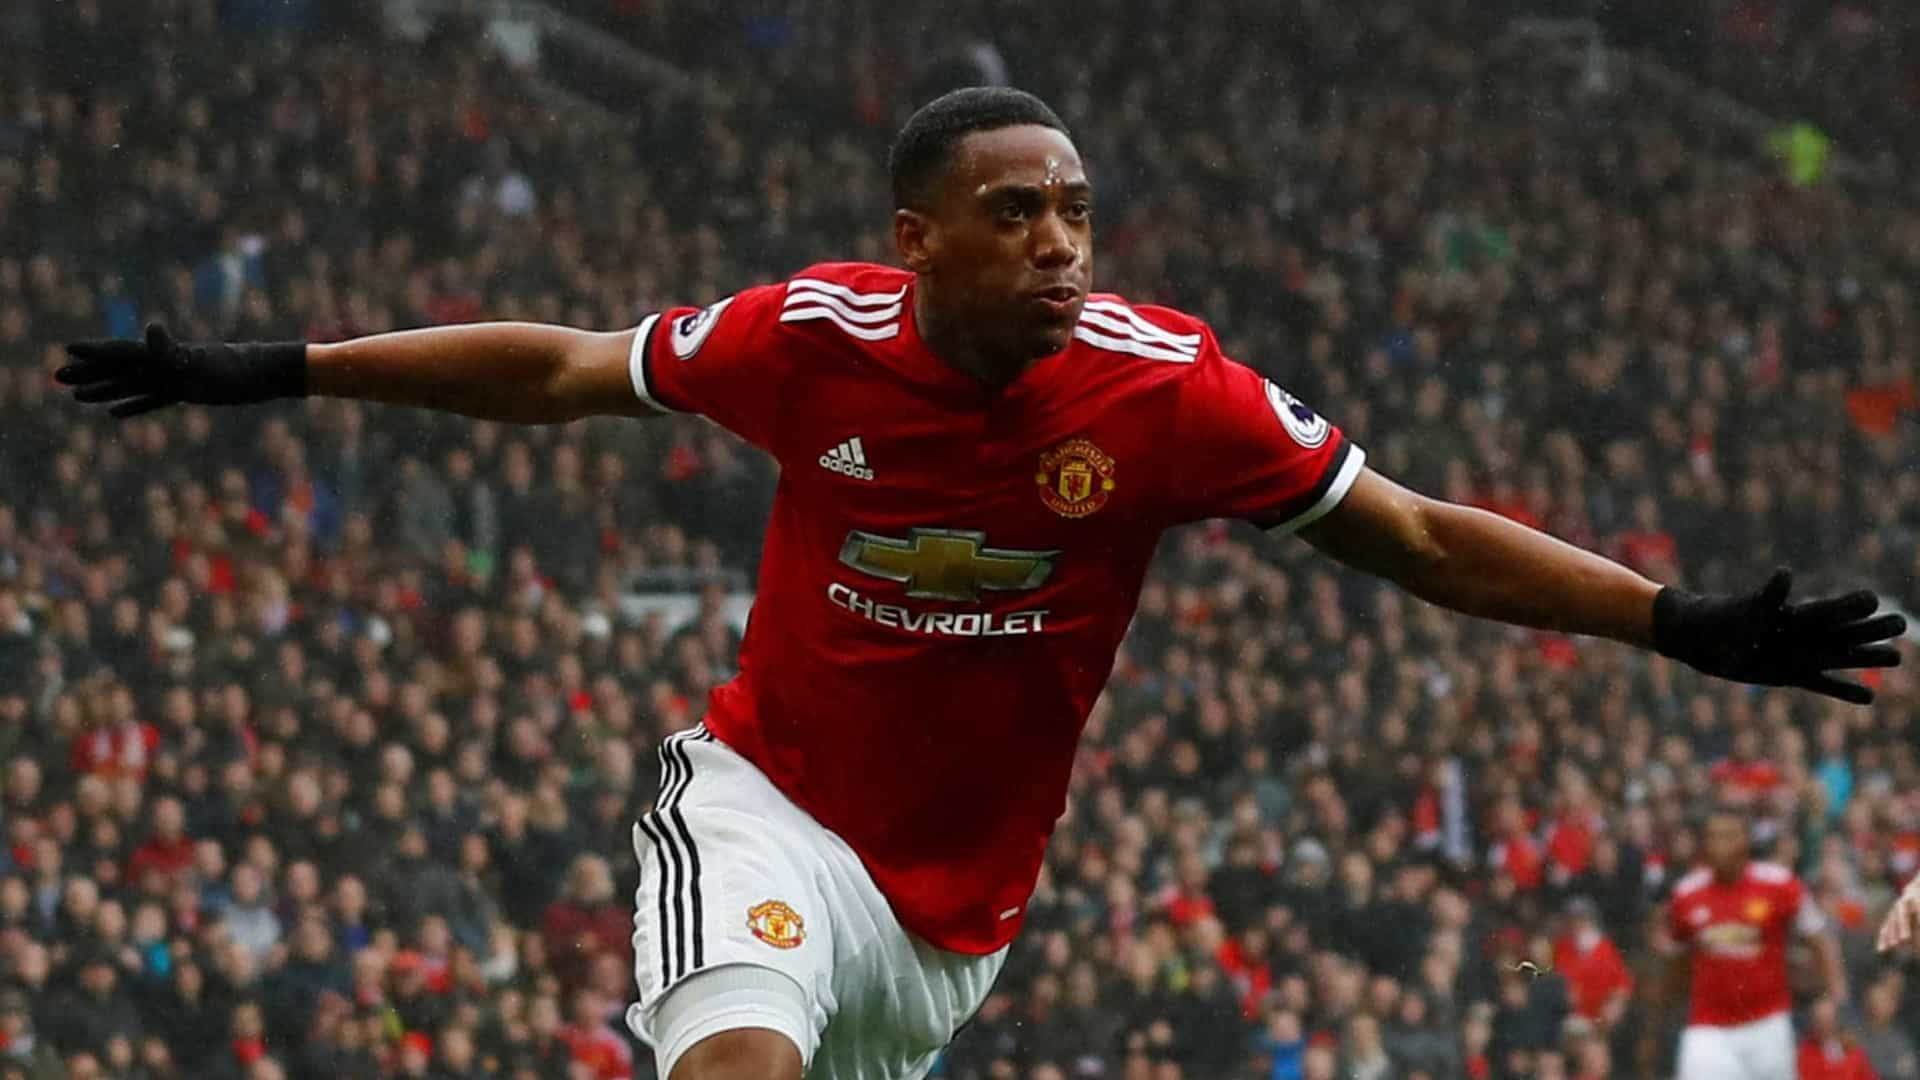 Empresário aponta Anthony Martial à porta de saída do M. United